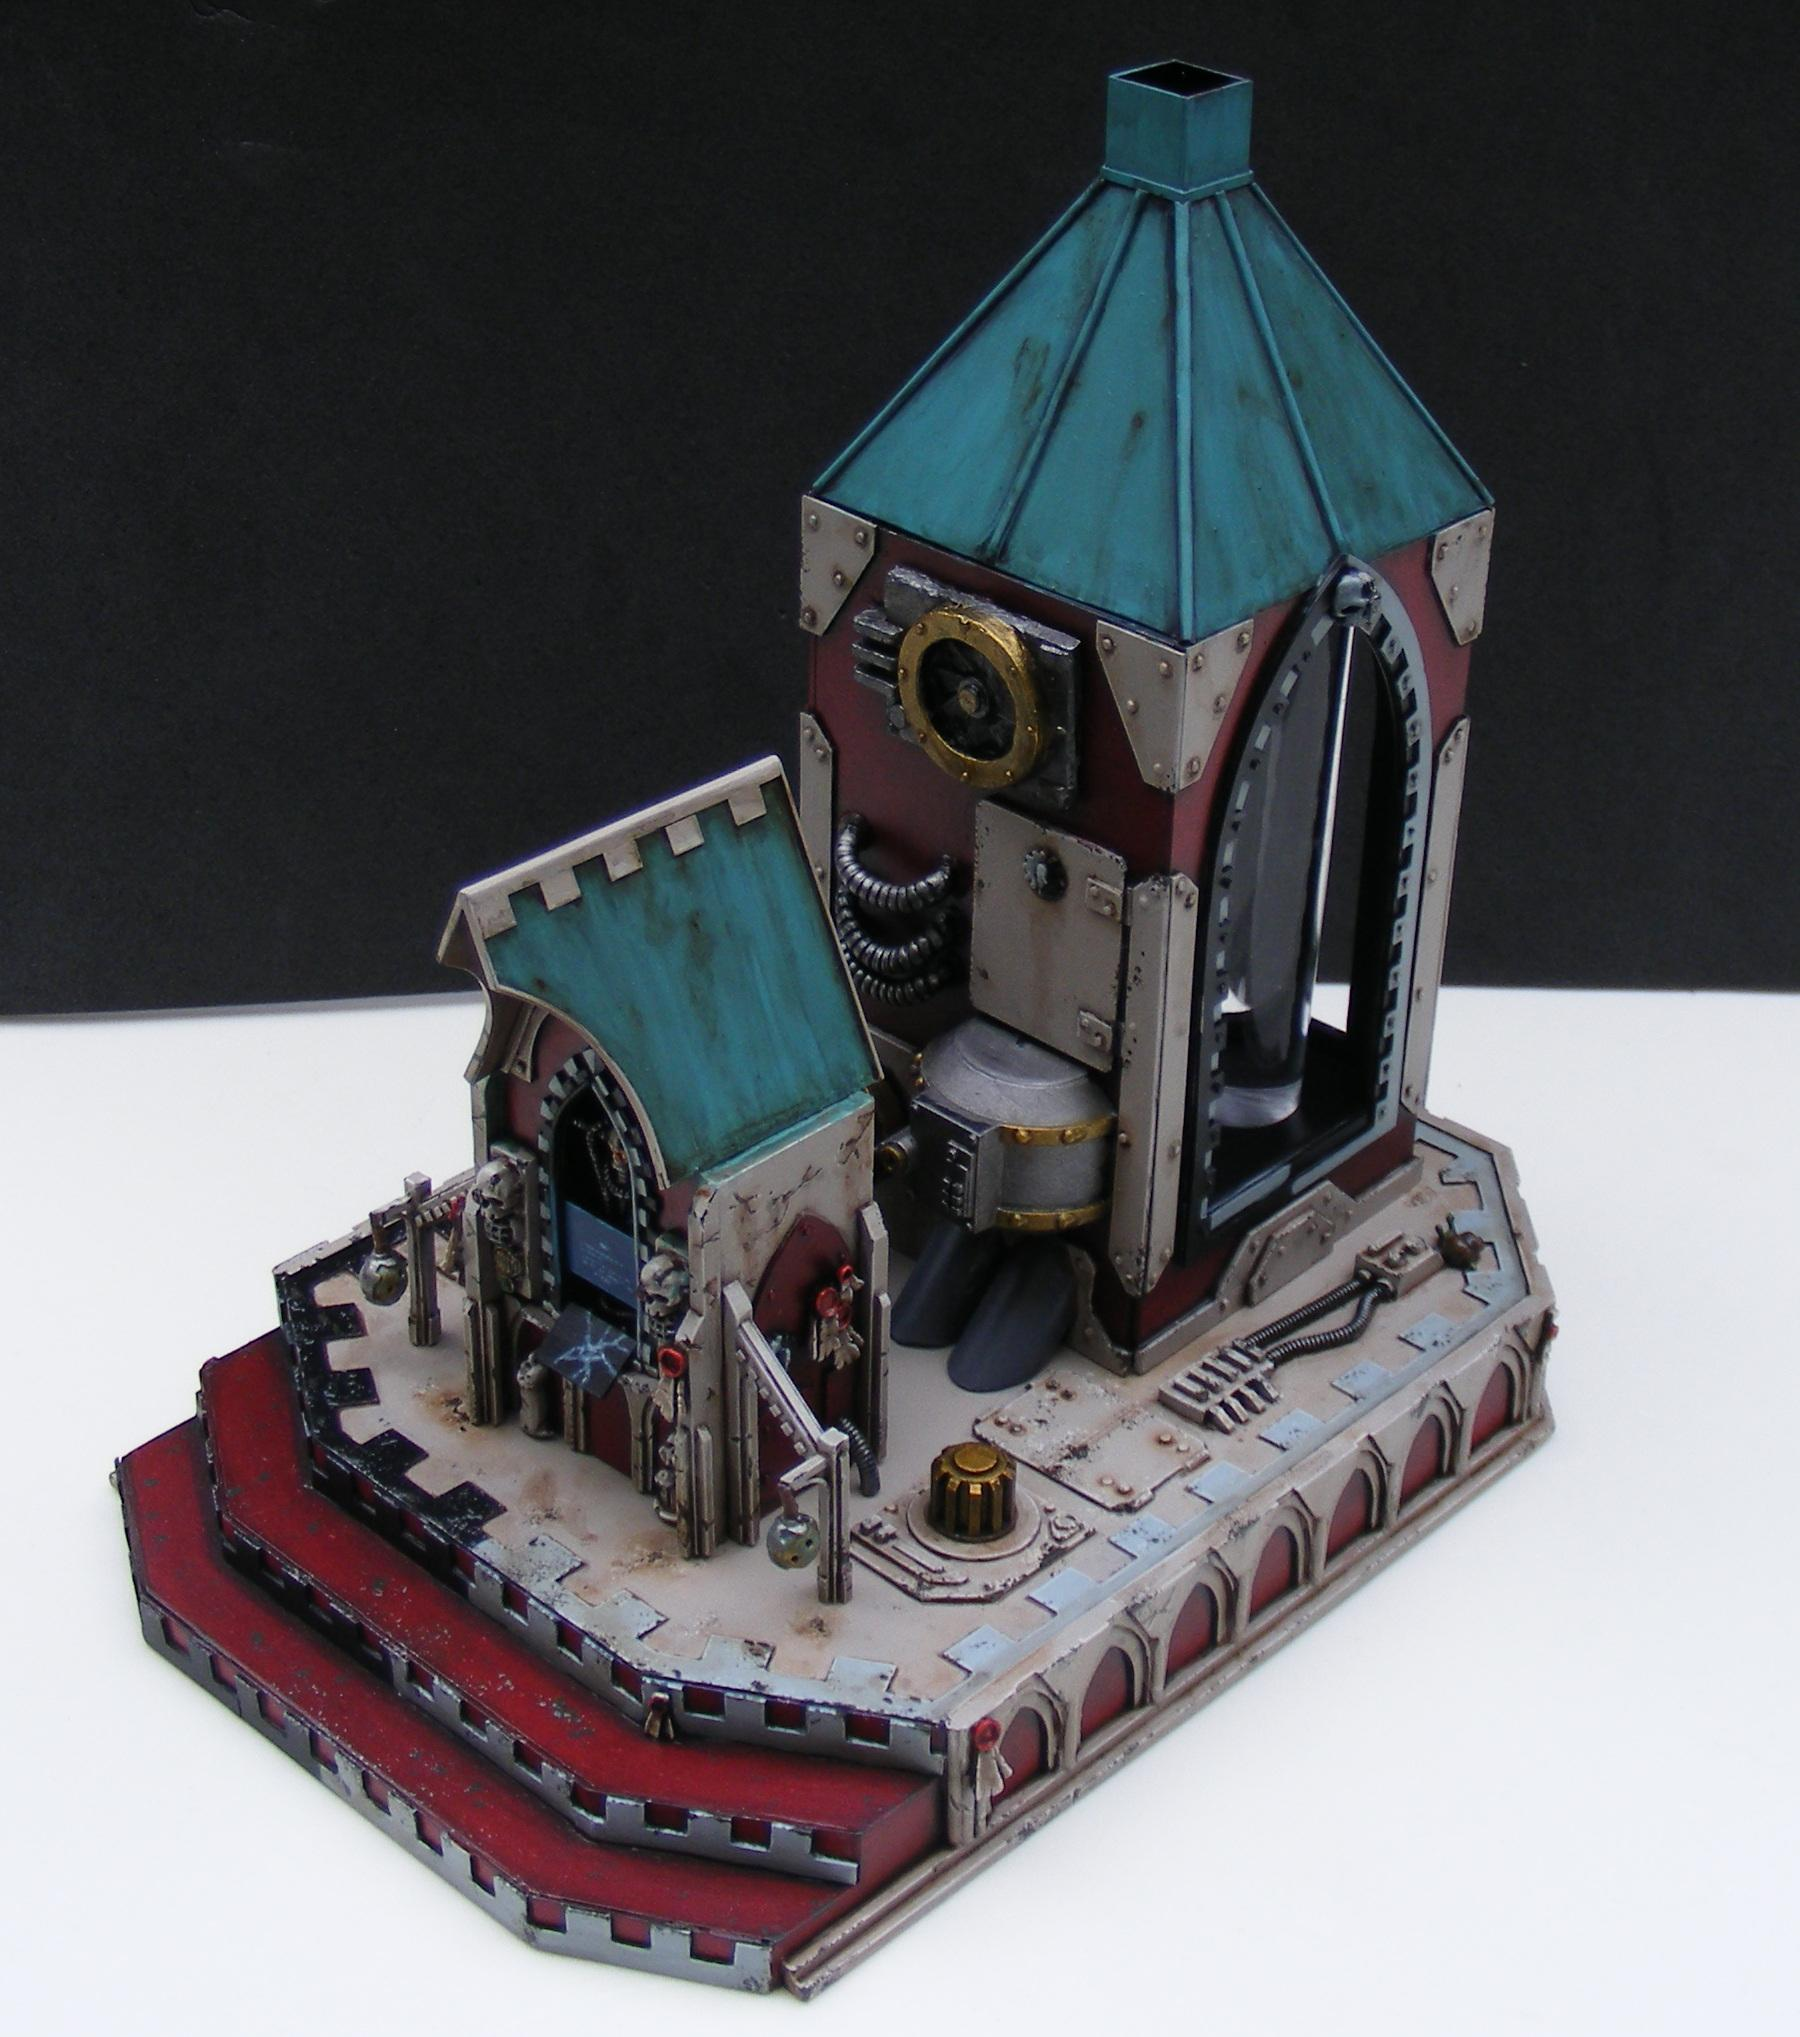 000 Shrine, Mechanicus, Terrain, Warhammer 40,000